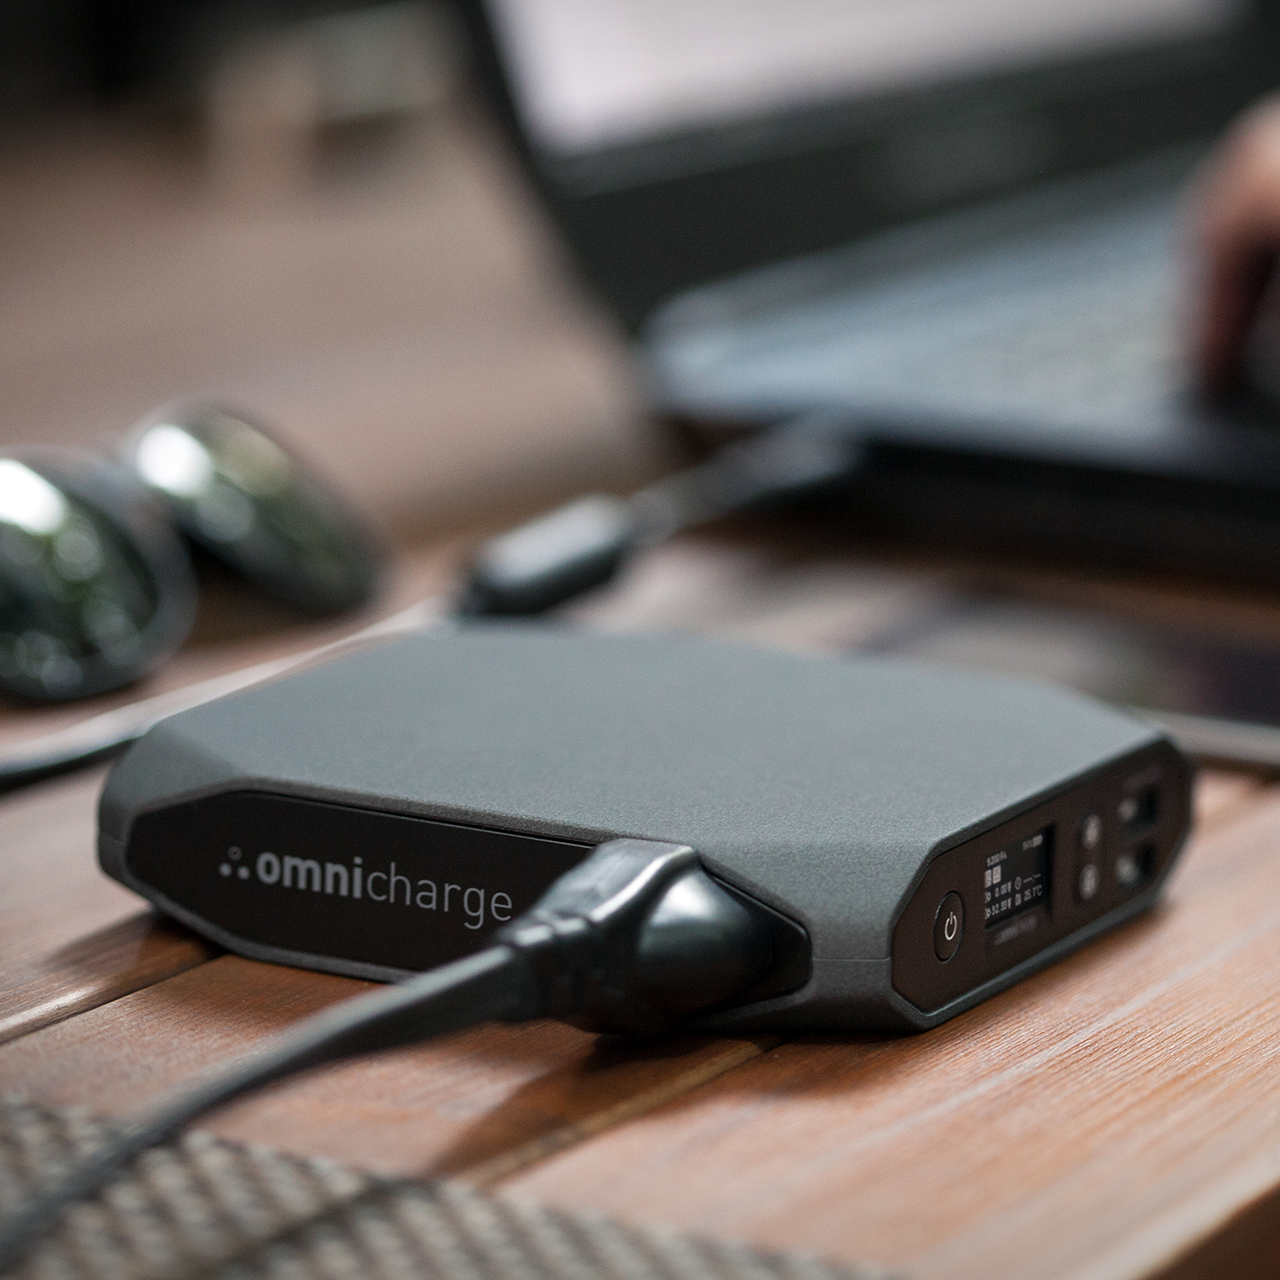 Omnicharge 20400mAh Smart & Compact Portable Power Bank